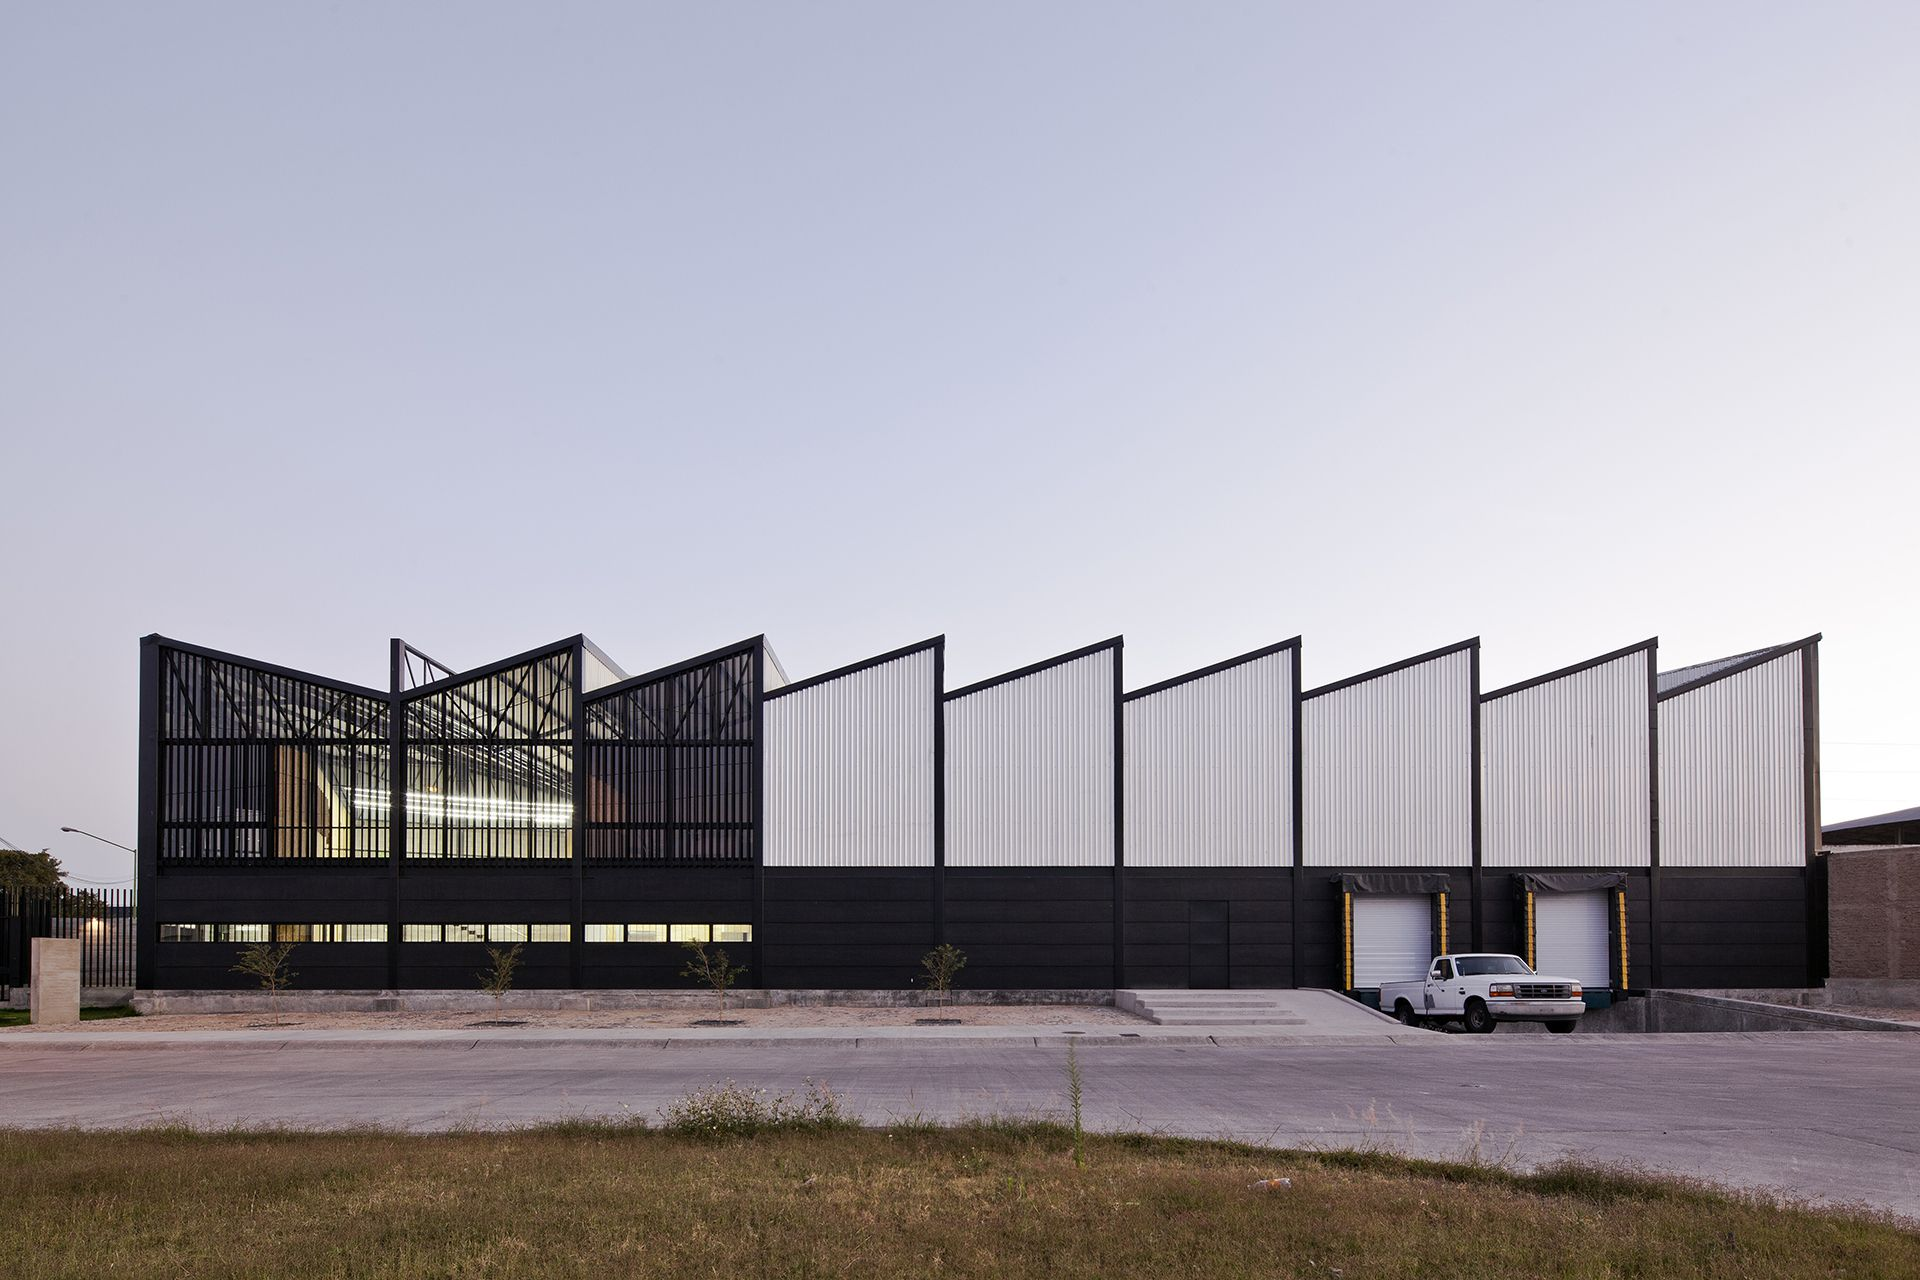 Levering trade atelier ars industrial arquitectura y for Arquitectura industrial